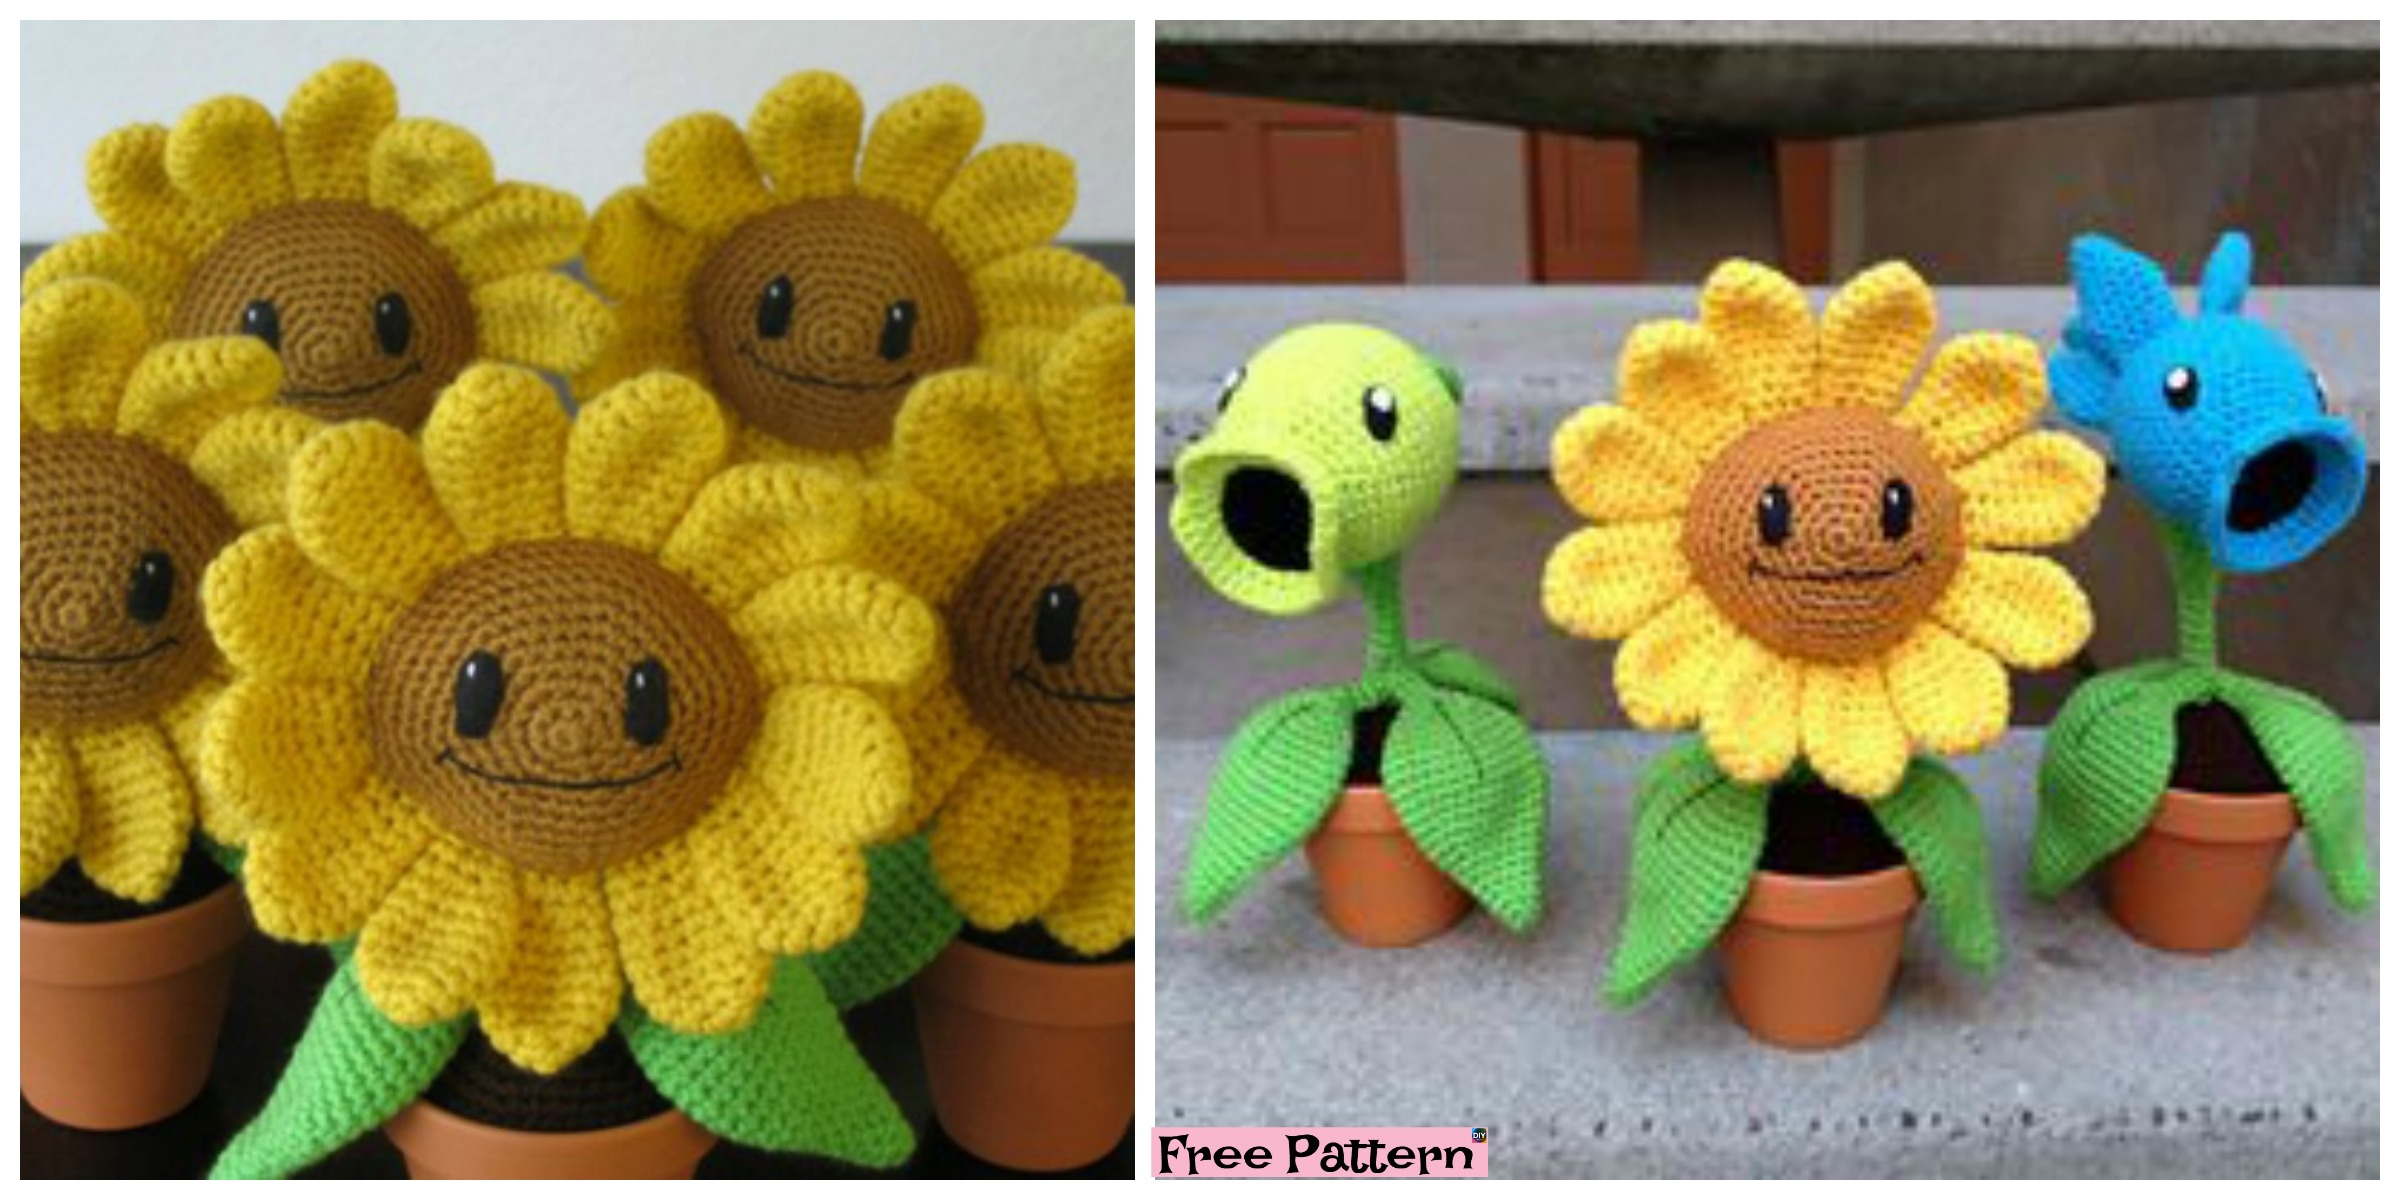 Happy Crochet Amigurumi Sunflower – Free Pattern